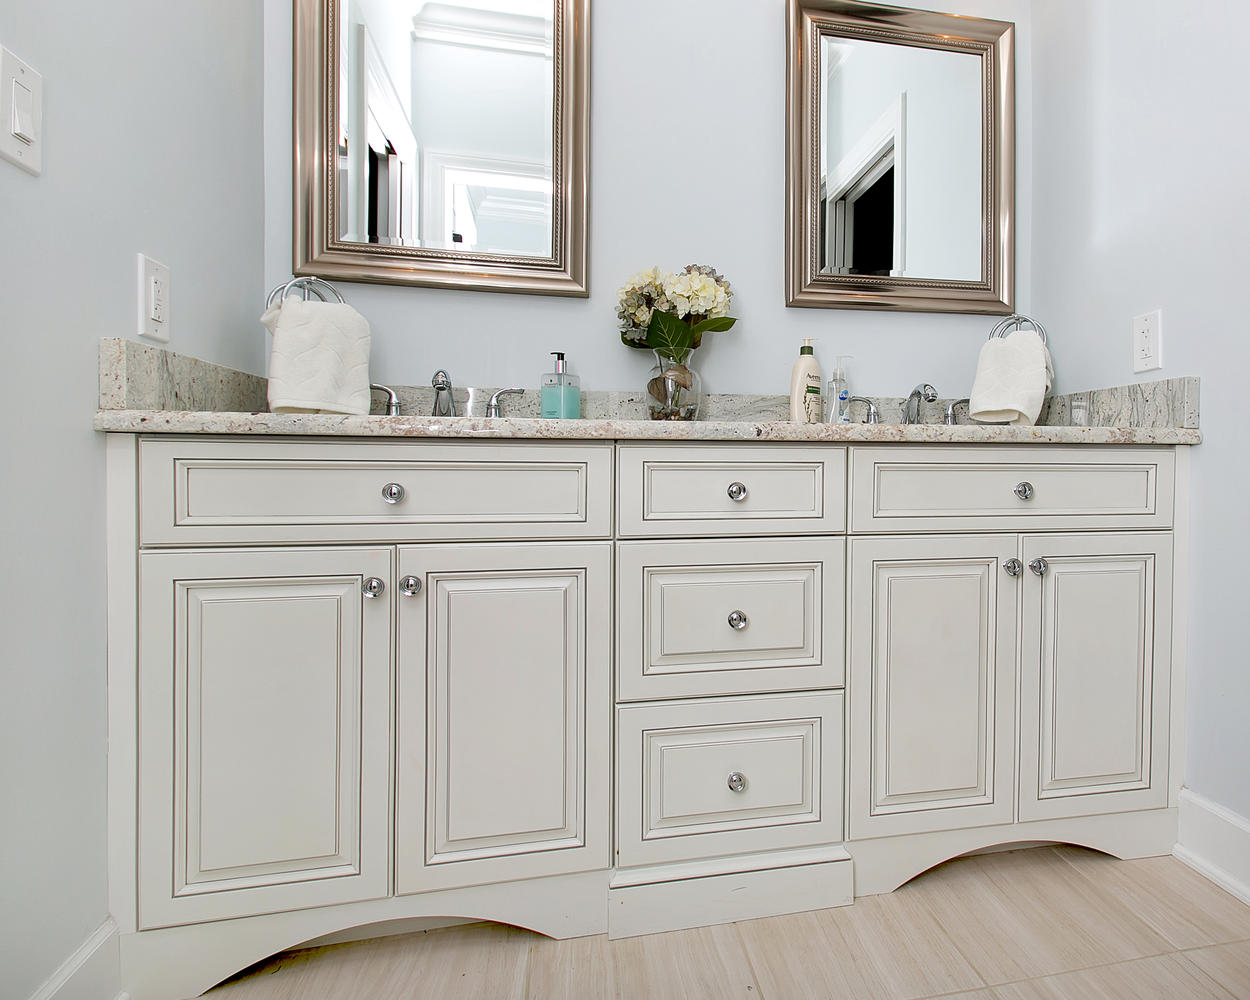 Bathroom vanities nj bathroom vanities nj lovely custom for Custom bathroom vanity designs